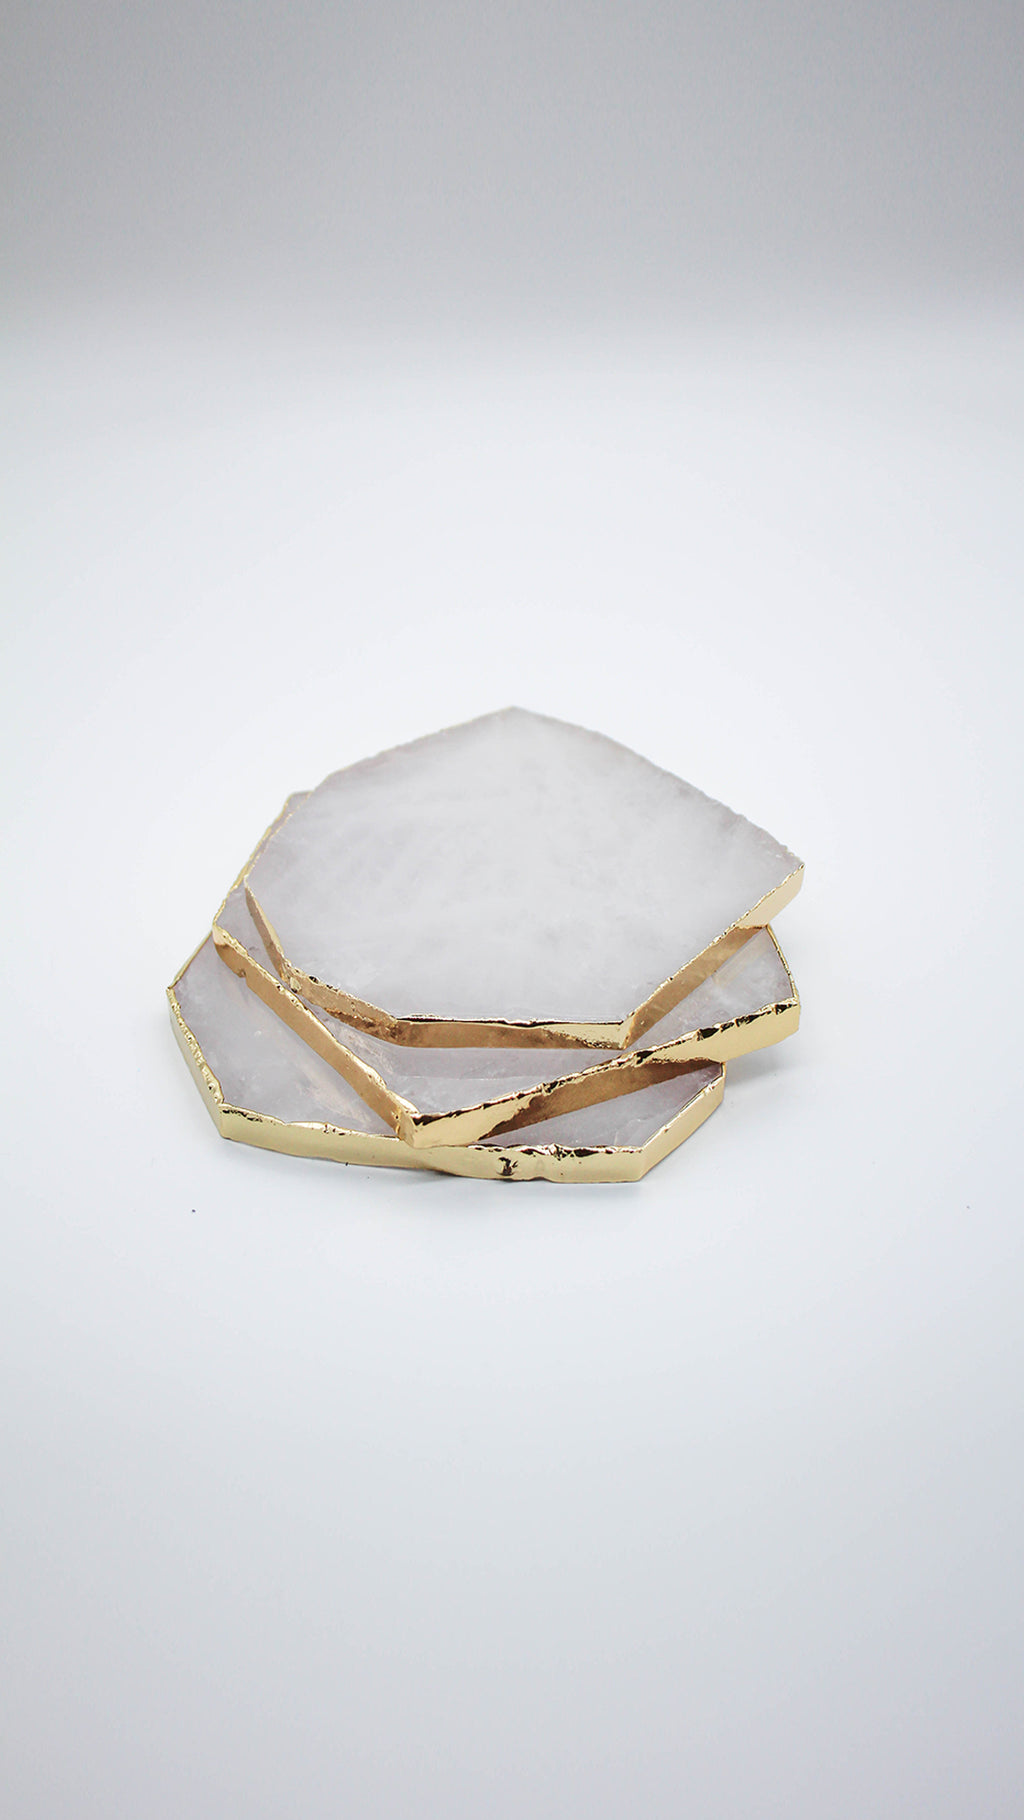 Clear Quartz - Jewelry Coaster (Single Coaster)